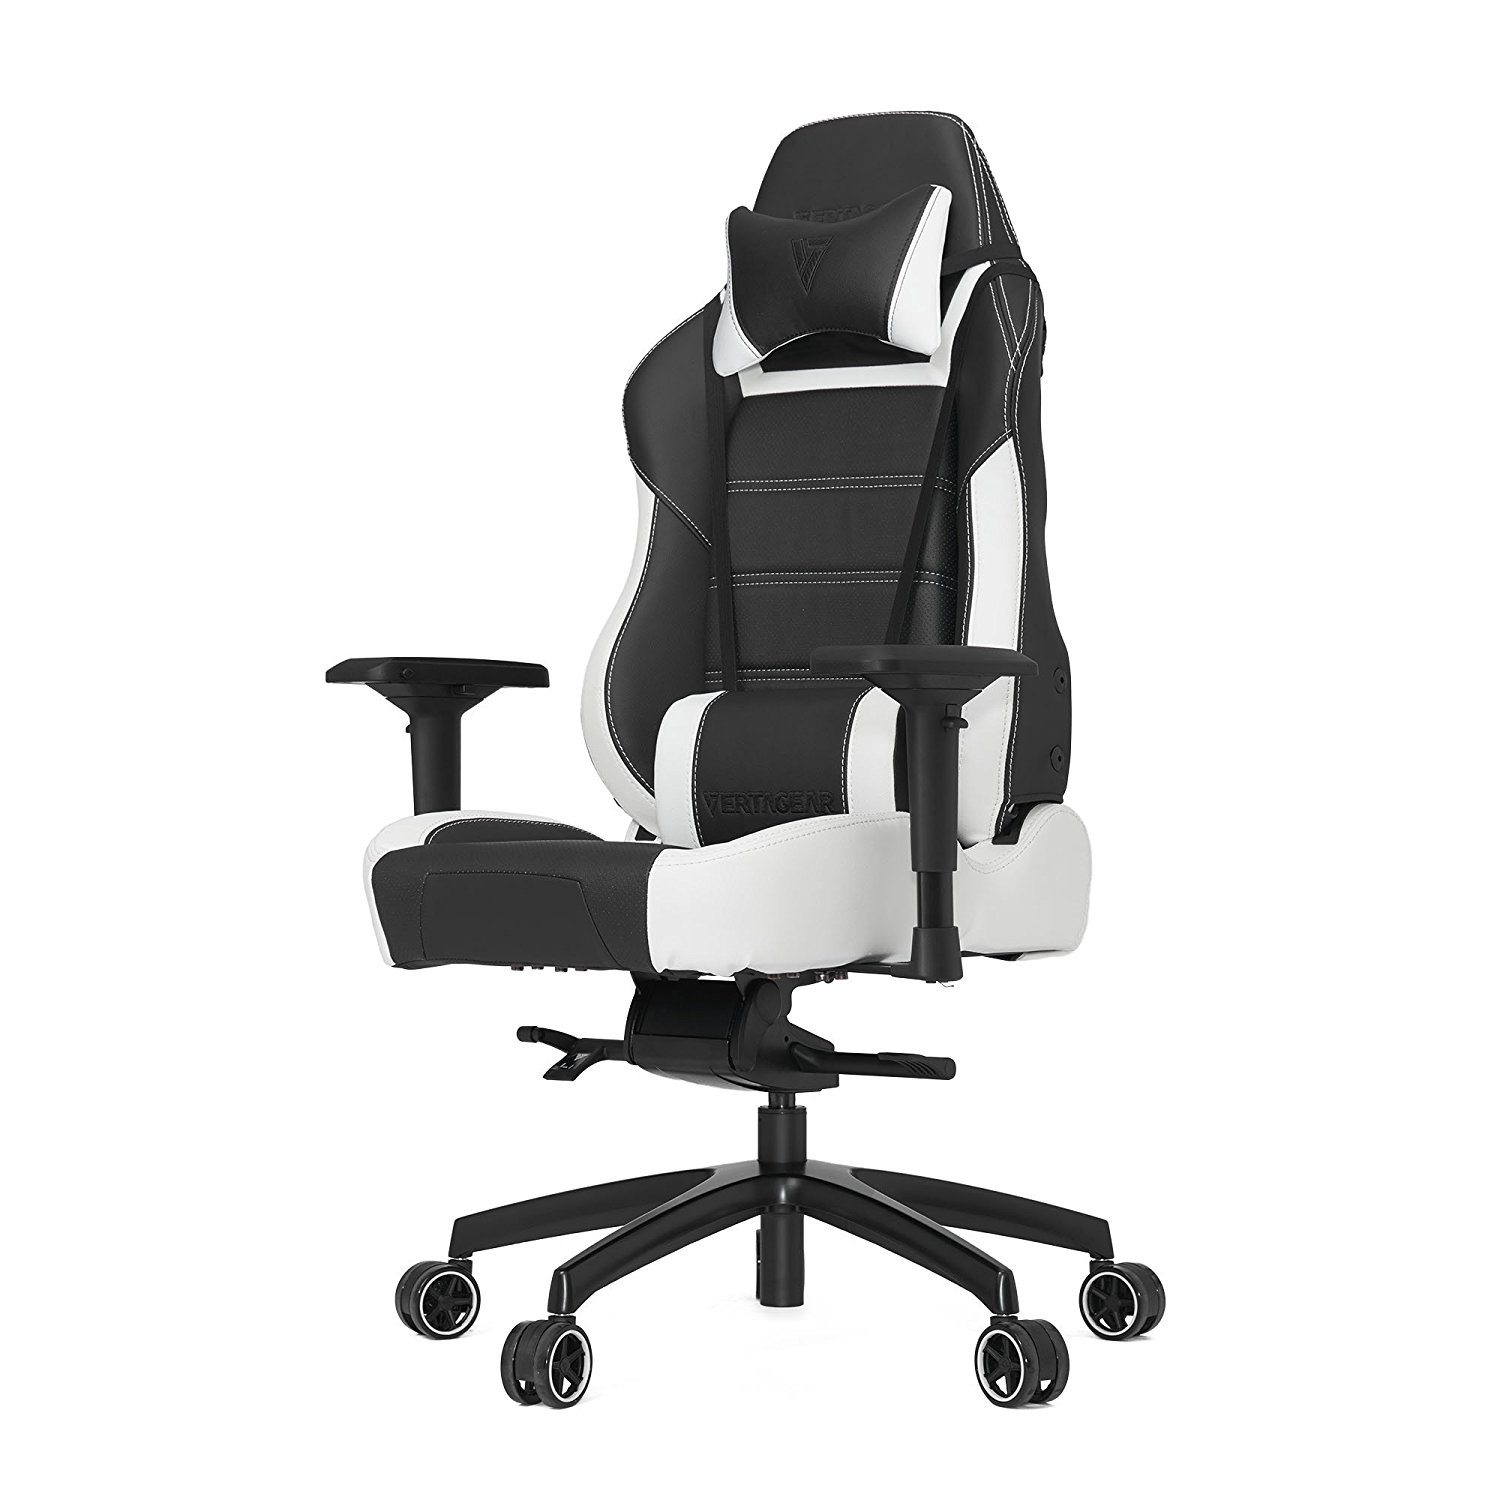 Extra Wide Office Chairs 10 Big And Tall Office Chairs For Extra Large Comfort